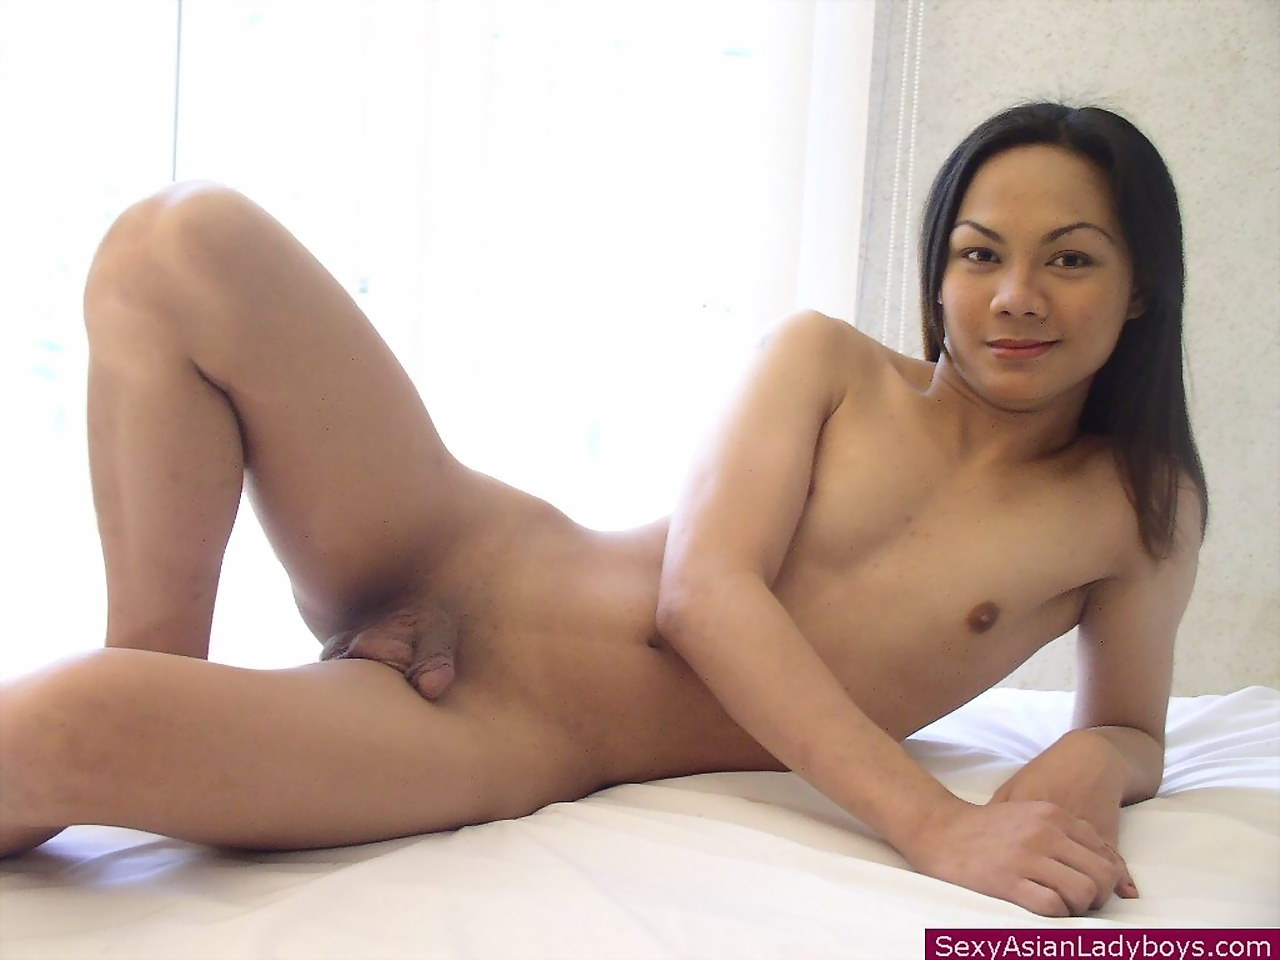 Shaved Ladyboys - Young and shy ladyboy undressing to flash her salivating ...